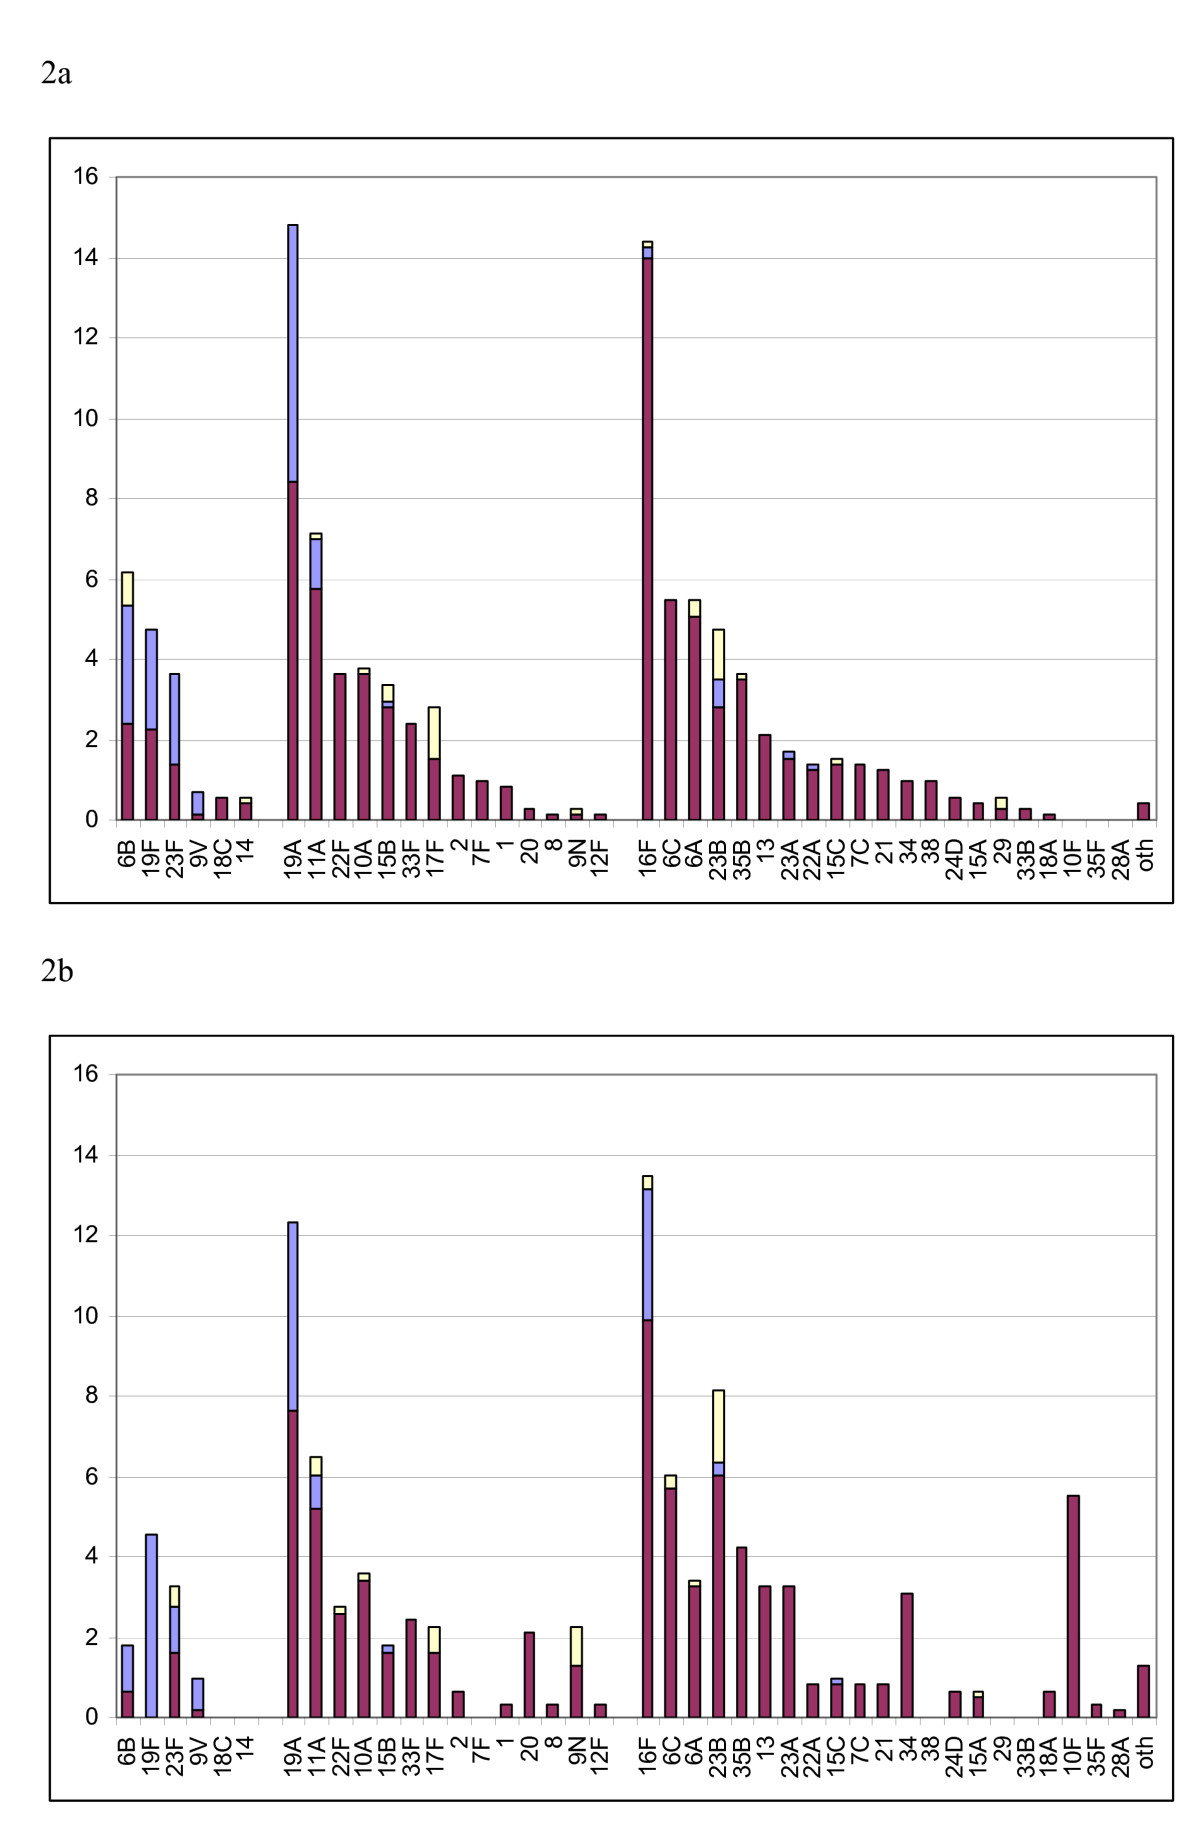 http://static-content.springer.com/image/art%3A10.1186%2F1471-2334-9-121/MediaObjects/12879_2008_Article_886_Fig2_HTML.jpg